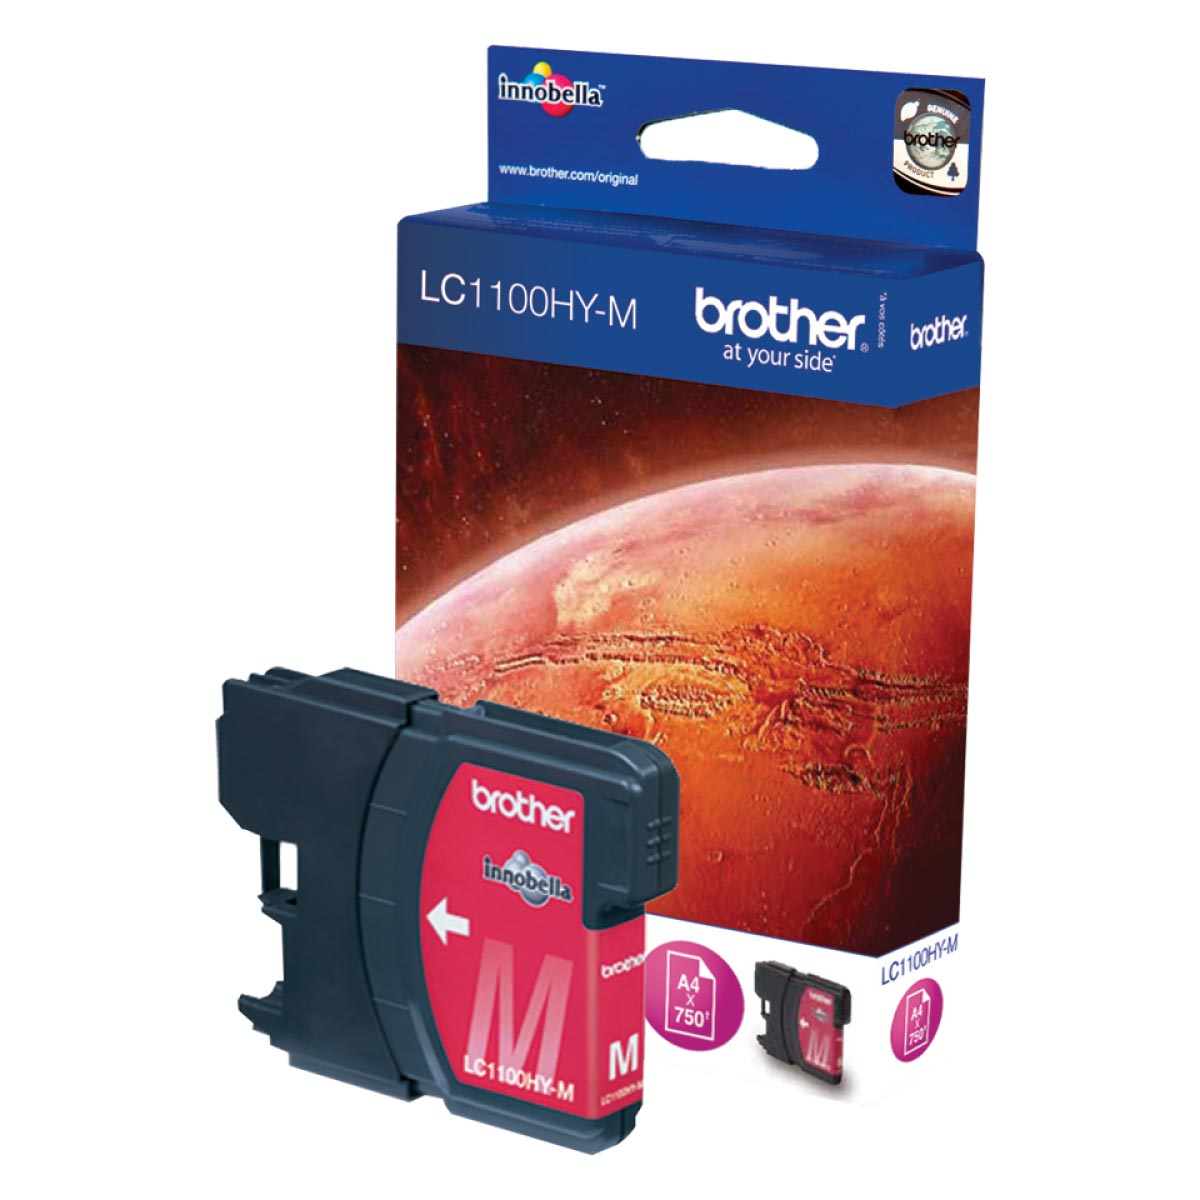 Cartucho de tinta original Brother LC1100HYM magenta alta capacidad